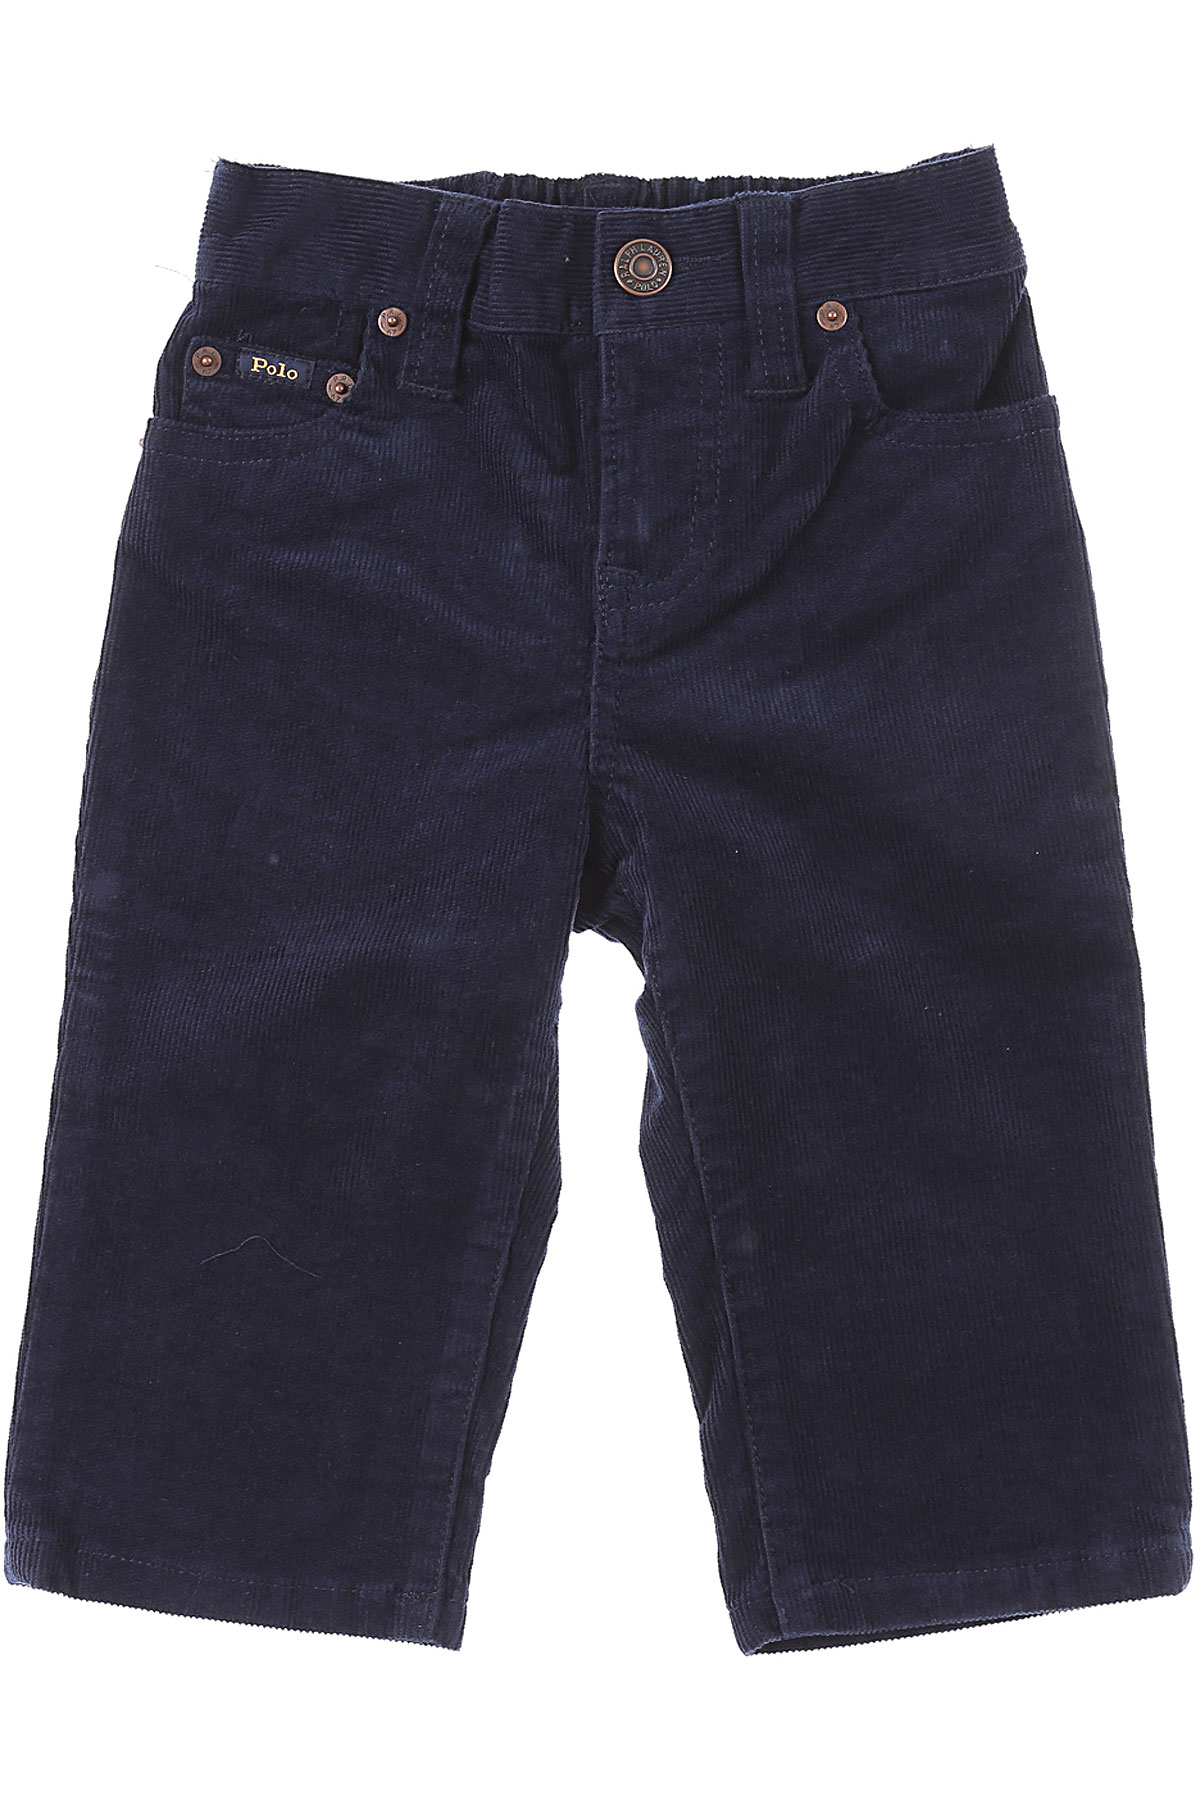 Ralph Lauren Baby Pants for Boys On Sale, French Navy, Cotton, 2019, 12 M 18 M